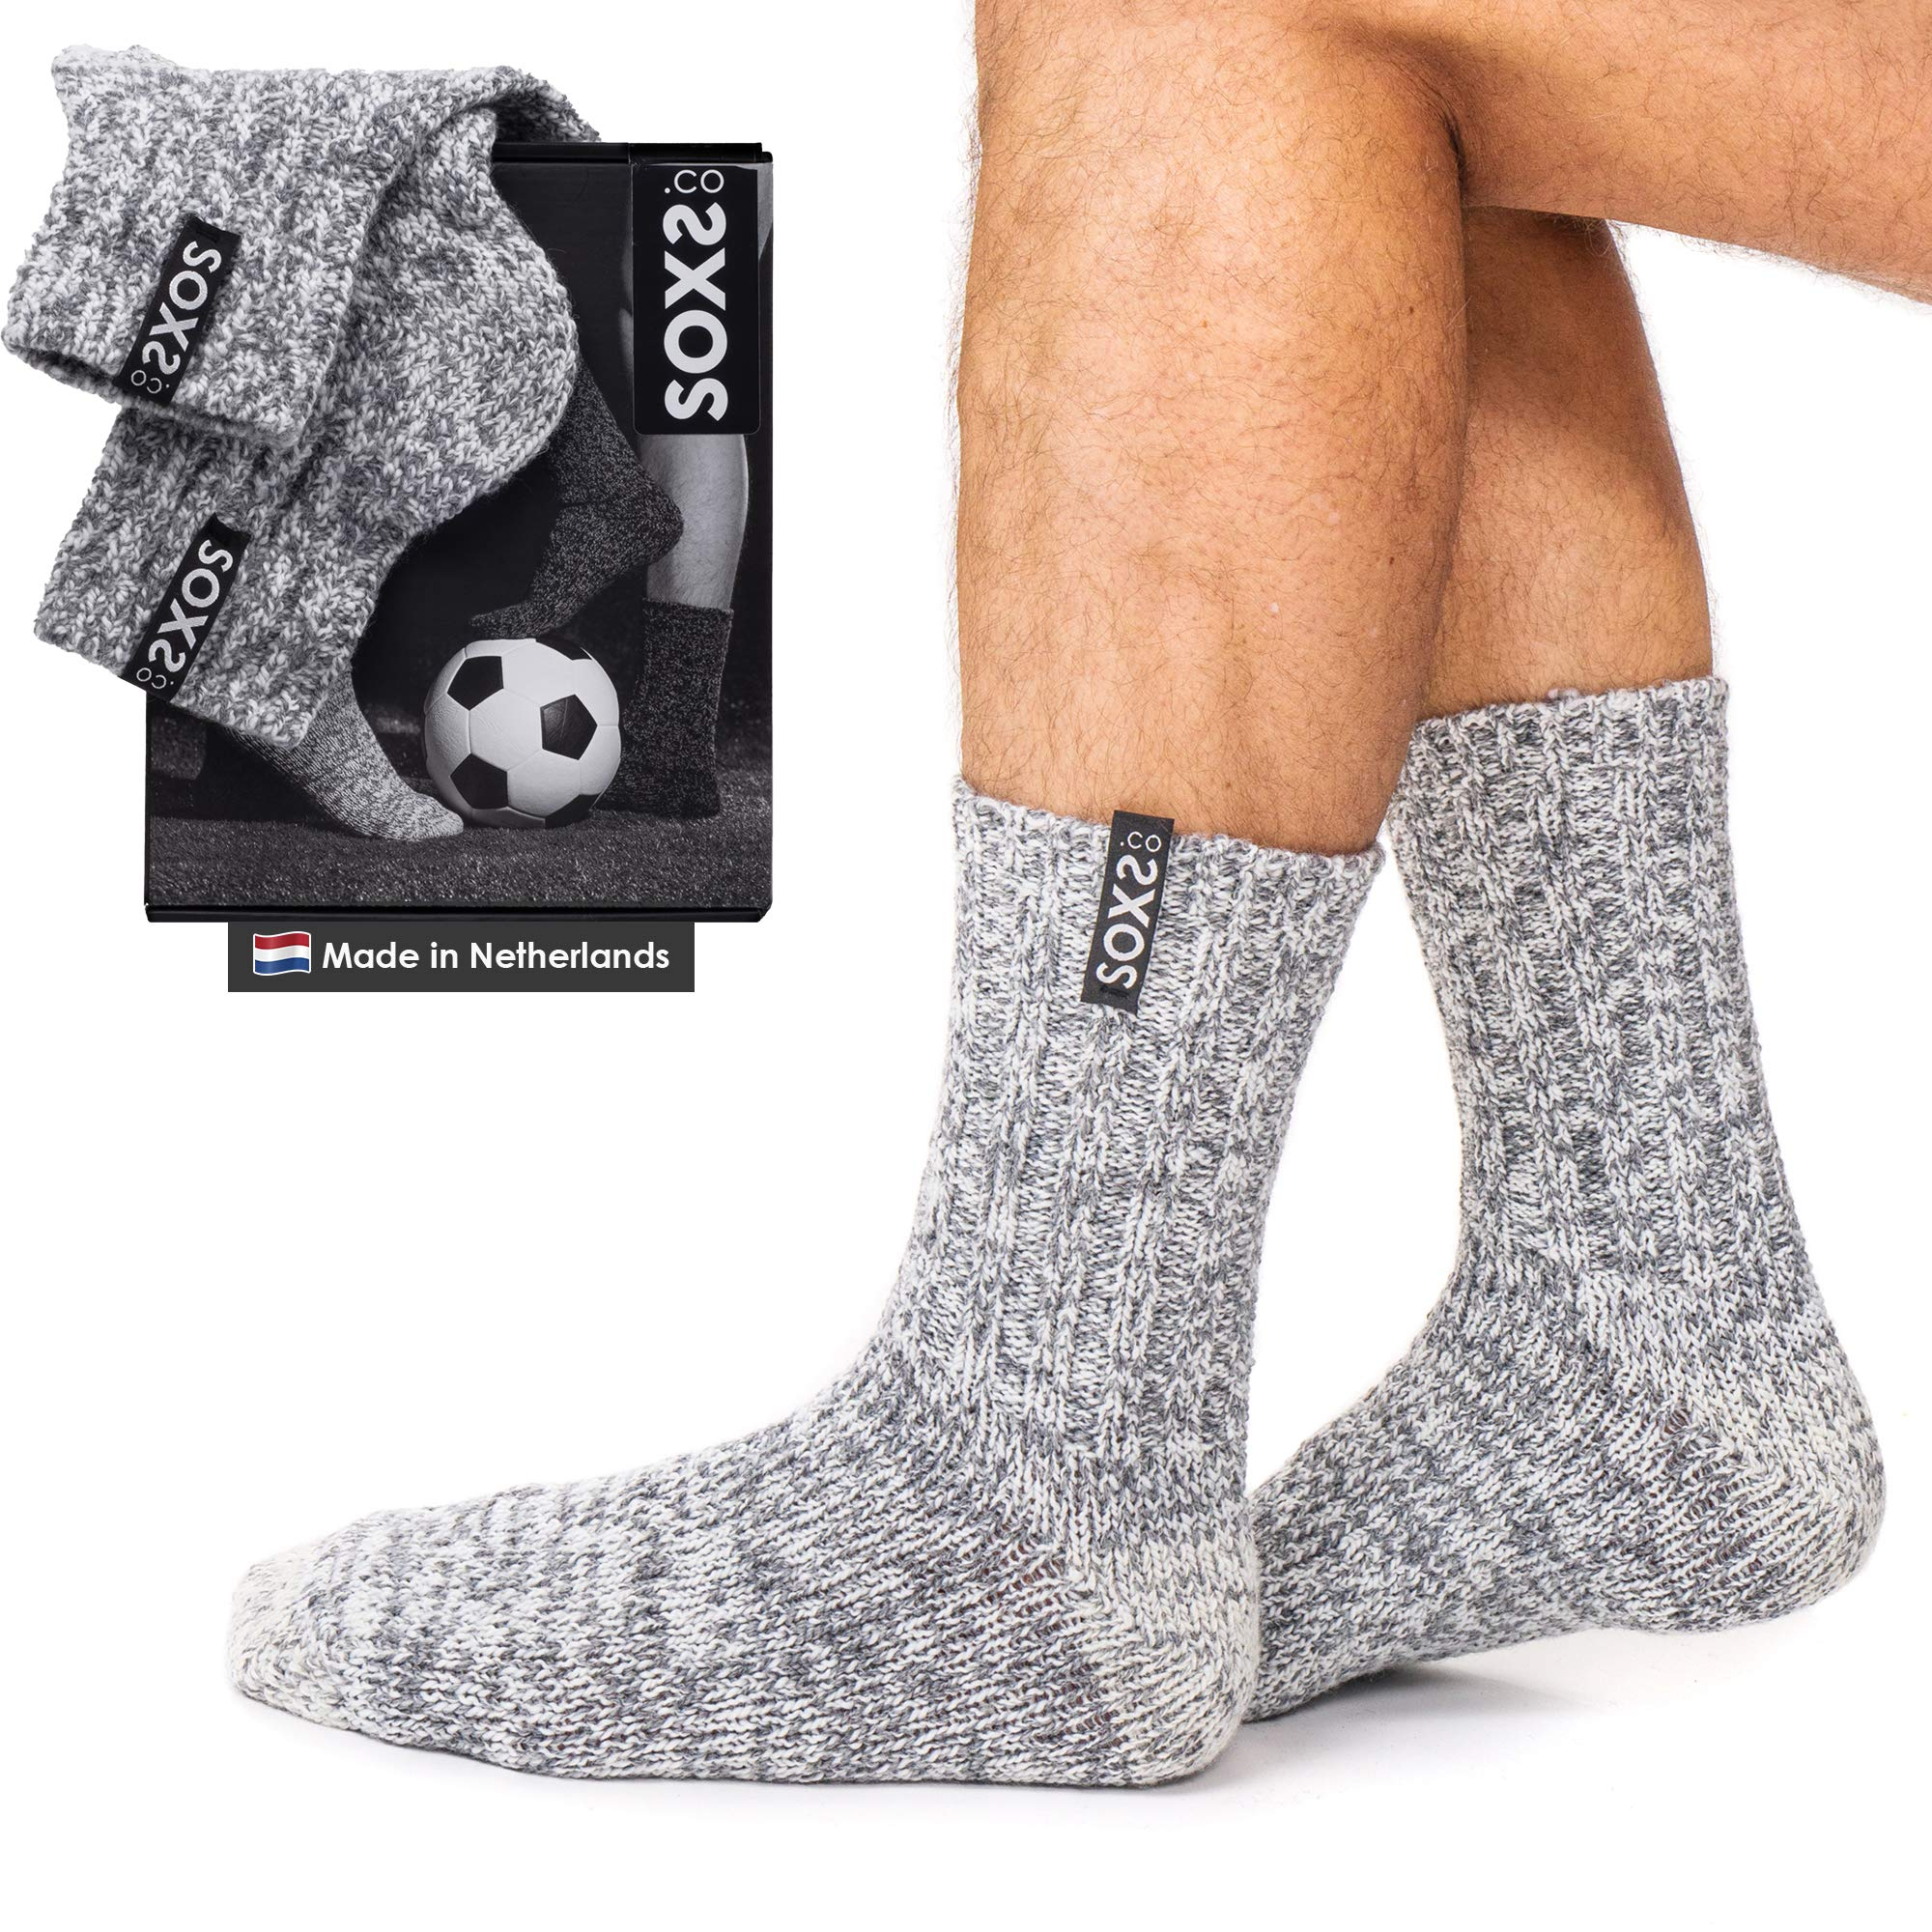 Men's Soft Warm Wool Socks Made in the Netherlands with Breathable Thick Eco-Friendly and Cozy Knit Wool, One Size Fits Most